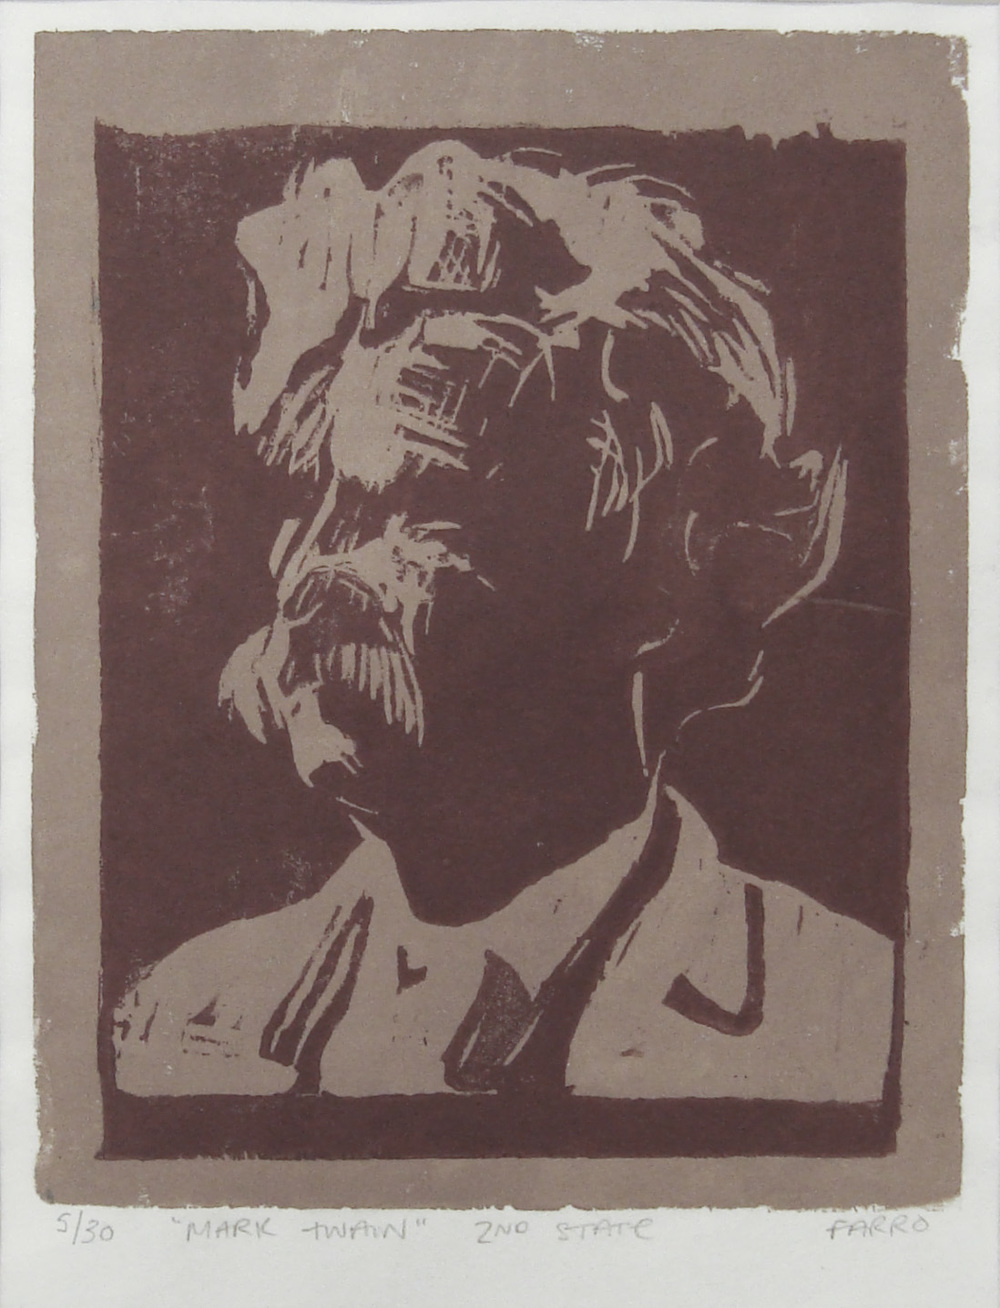 Mark Twain   woodblock print  2nd state  edition of 30  6x7""